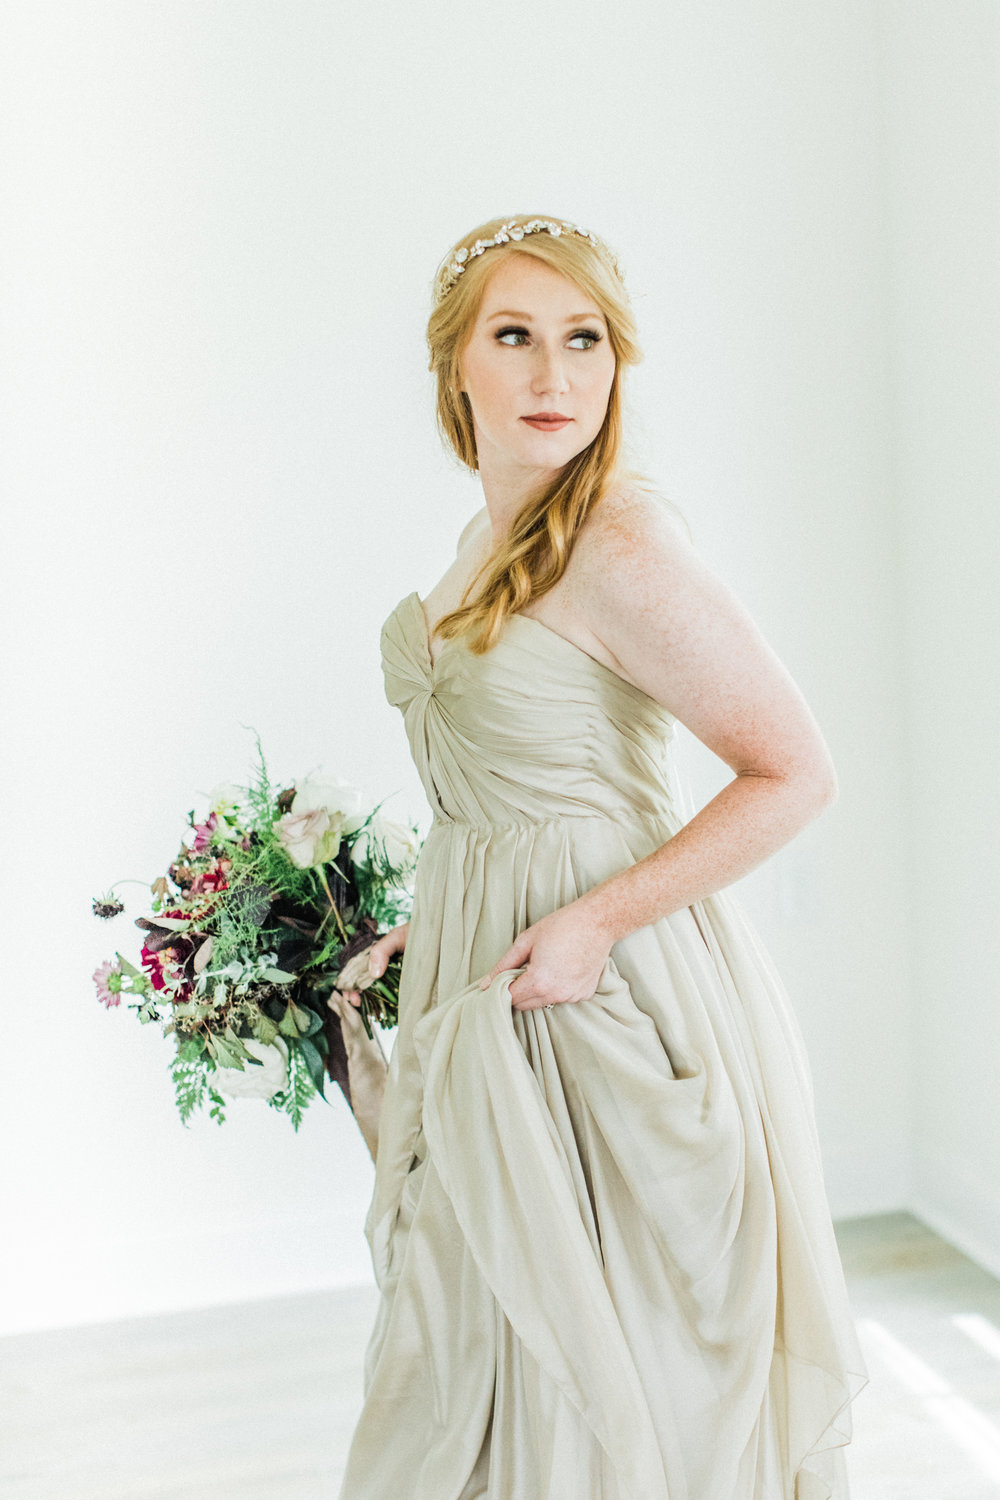 Creamy, yummy cafe au lait color. Dress from LVD Bridal, photography by Sarah Sidwell Photography, florals by Emily Kennedy of Kennedy Occasions, styling by jennifer of {feather + oak}.